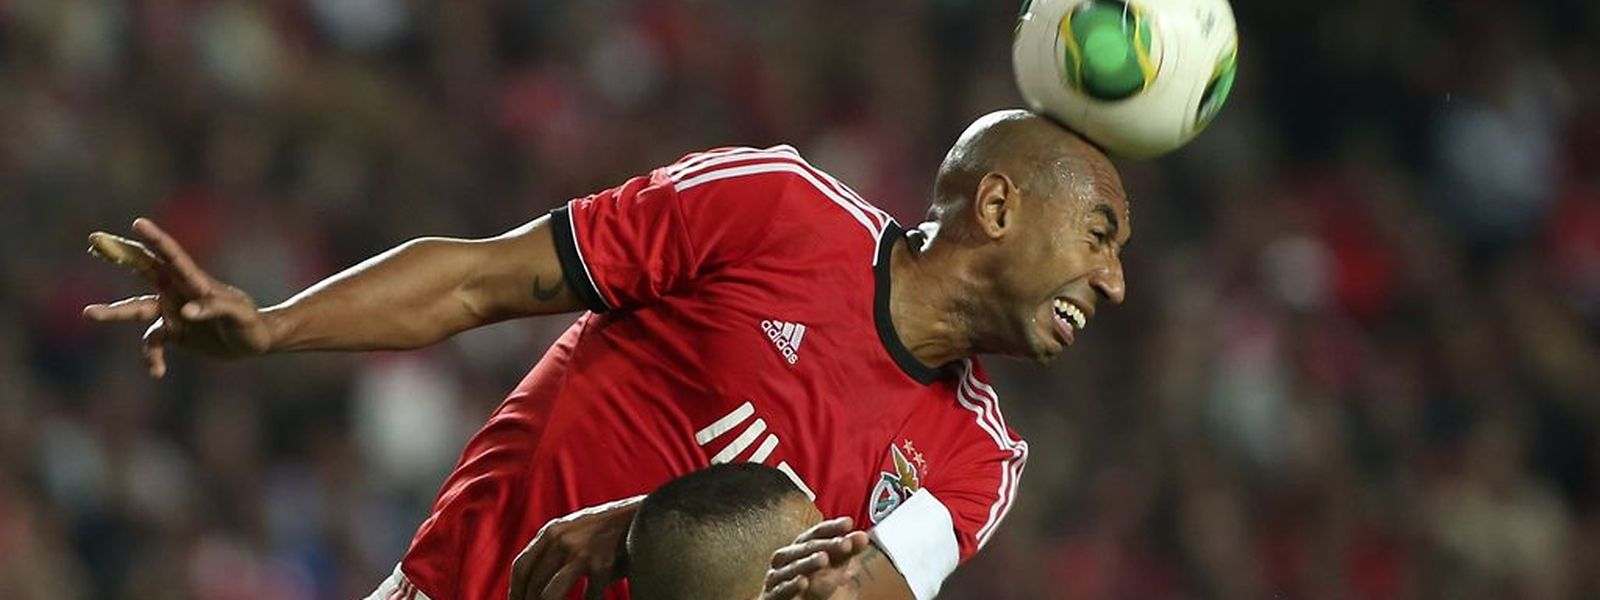 Benfica's player Luisao (R) fights for the ball with Slimani of Sporting's Lisbon during their derby 4th leg soccer match of the Portugal's Cup, at Luz stadium in Lisbon, Portugal, 9th November 2013. MANUEL DE ALMEIDA/LUSA